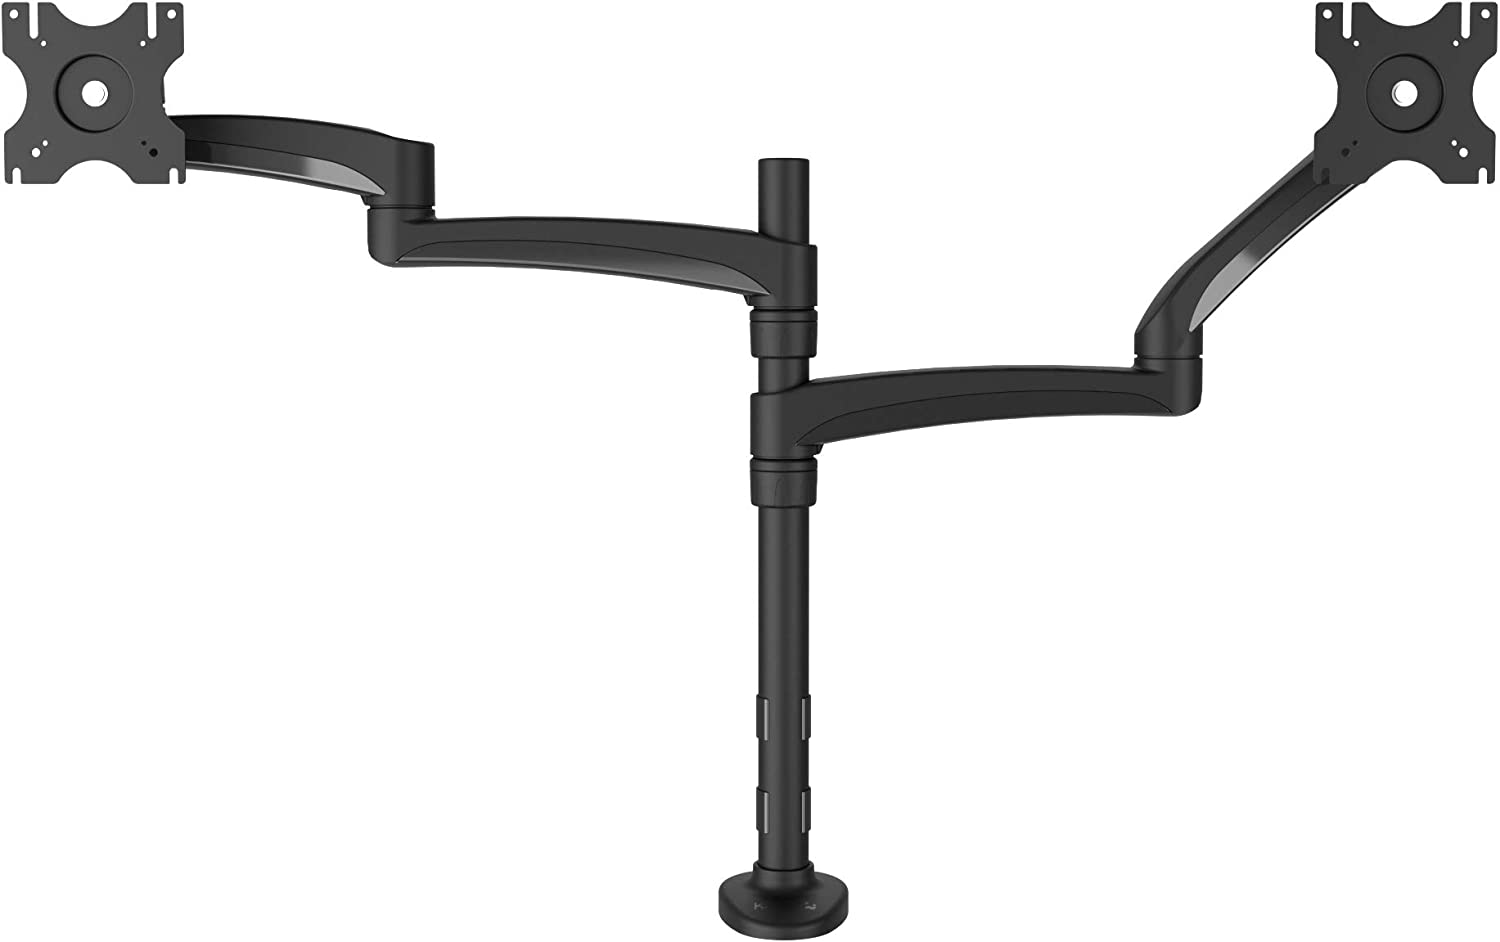 "Kanto DM2032 Dual Monitor Desktop Arm Mount for 20"" to 32"" Monitors, Clamp & Grommet Compatible, Fully Adjustable with Cable Management"